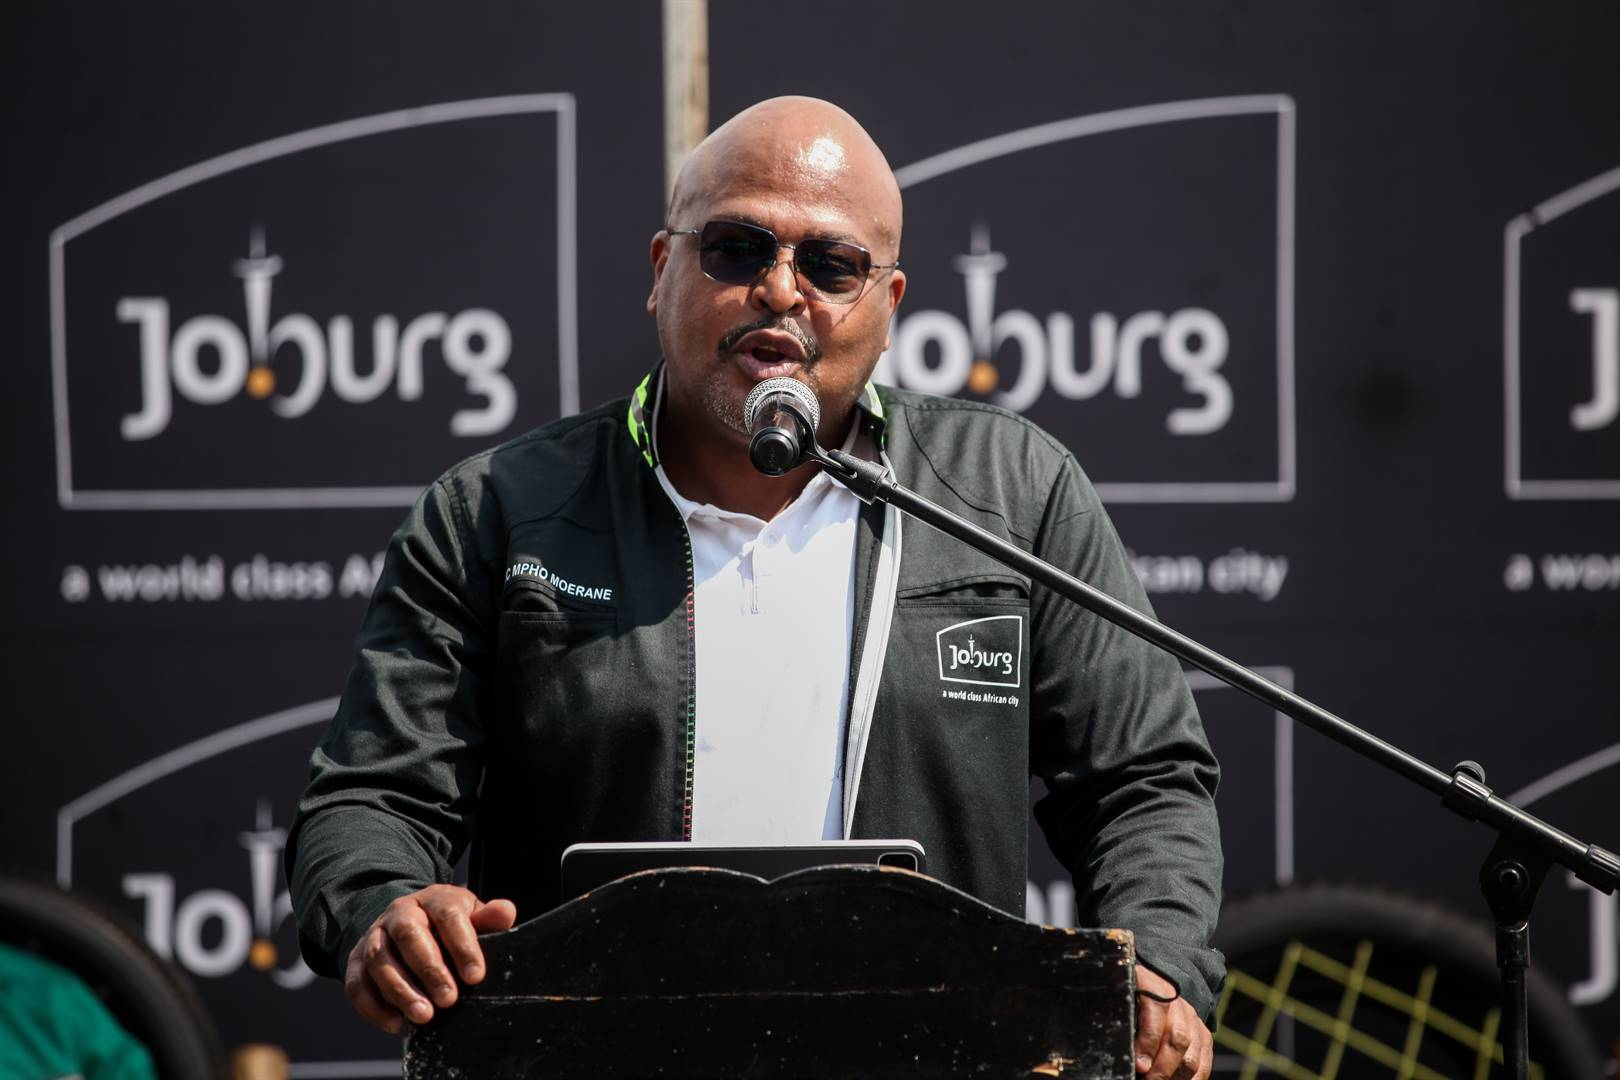 City of Joburg 'rejects' new round of load shedding, threatens legal action against Eskom - News24